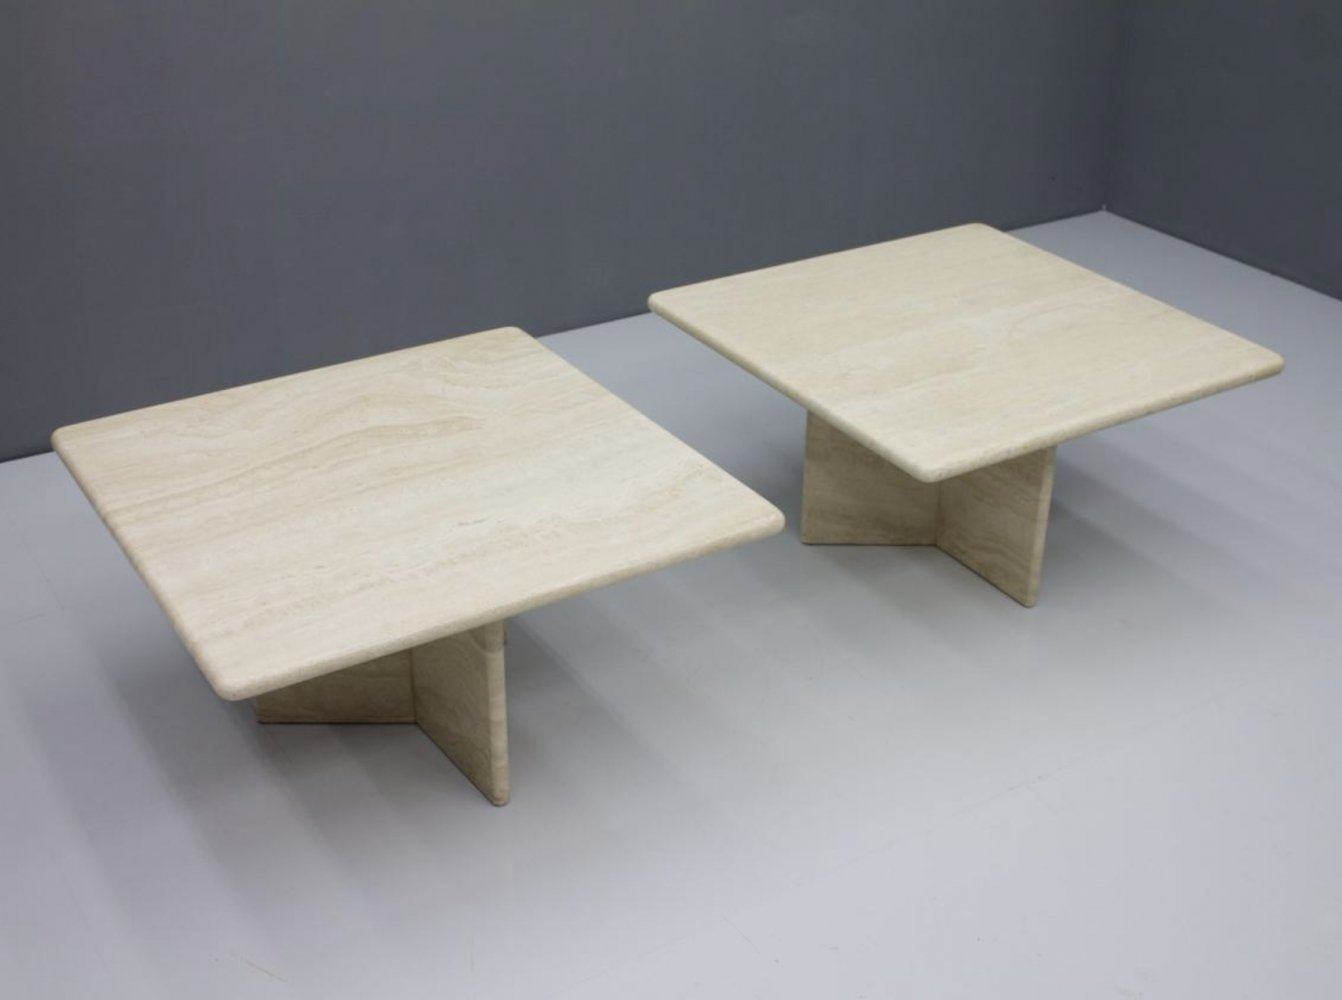 Travertine Coffee or Side Table with Polished Top, Italy 1970s